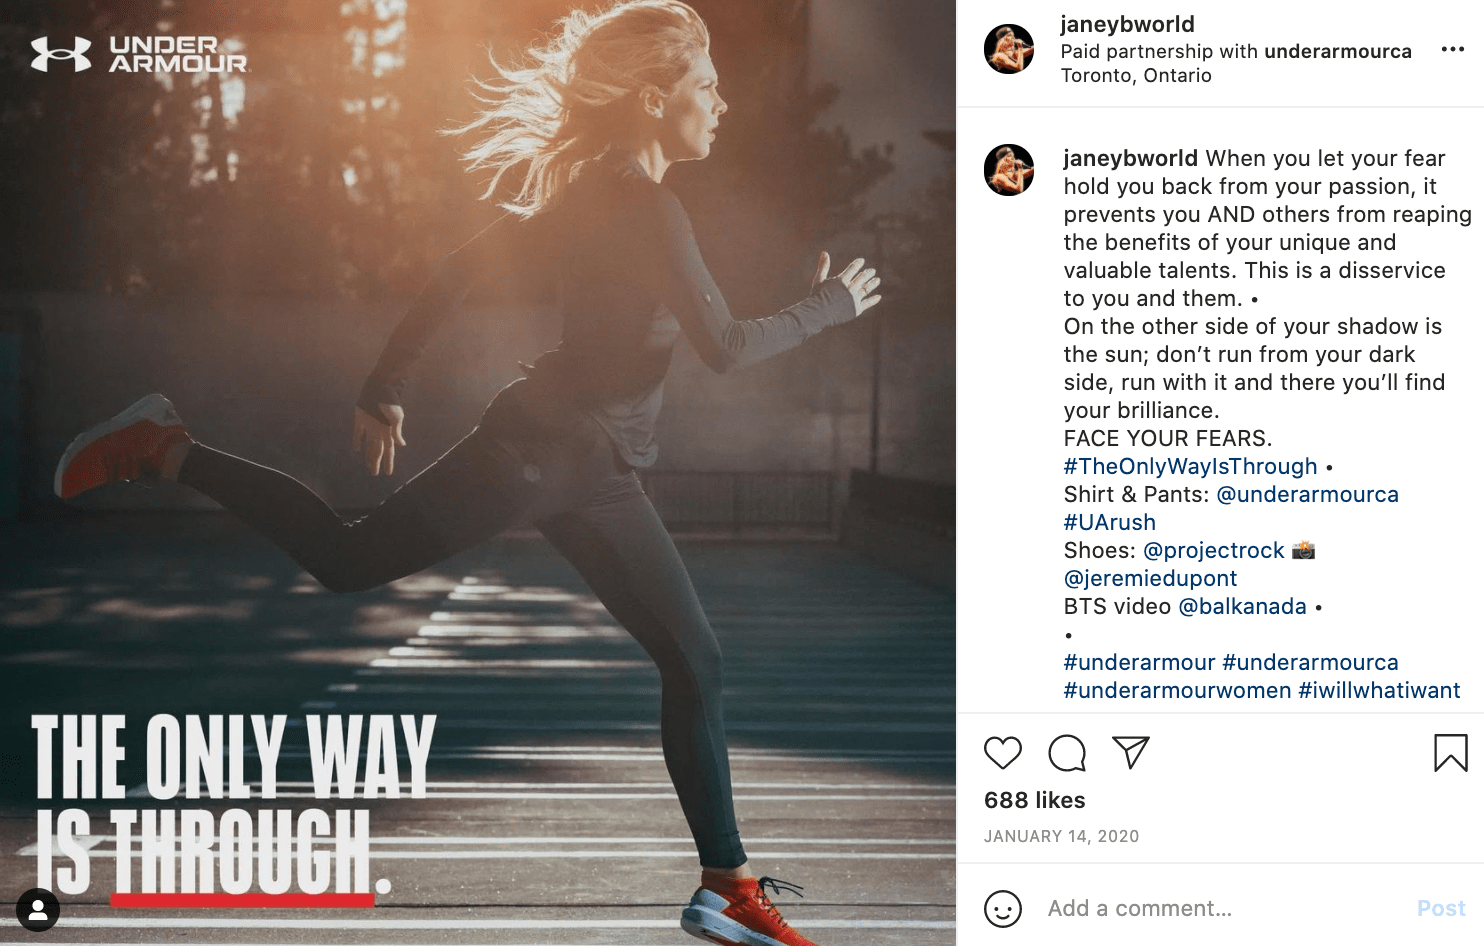 under armour's instagram campaign, an example of internet marketing